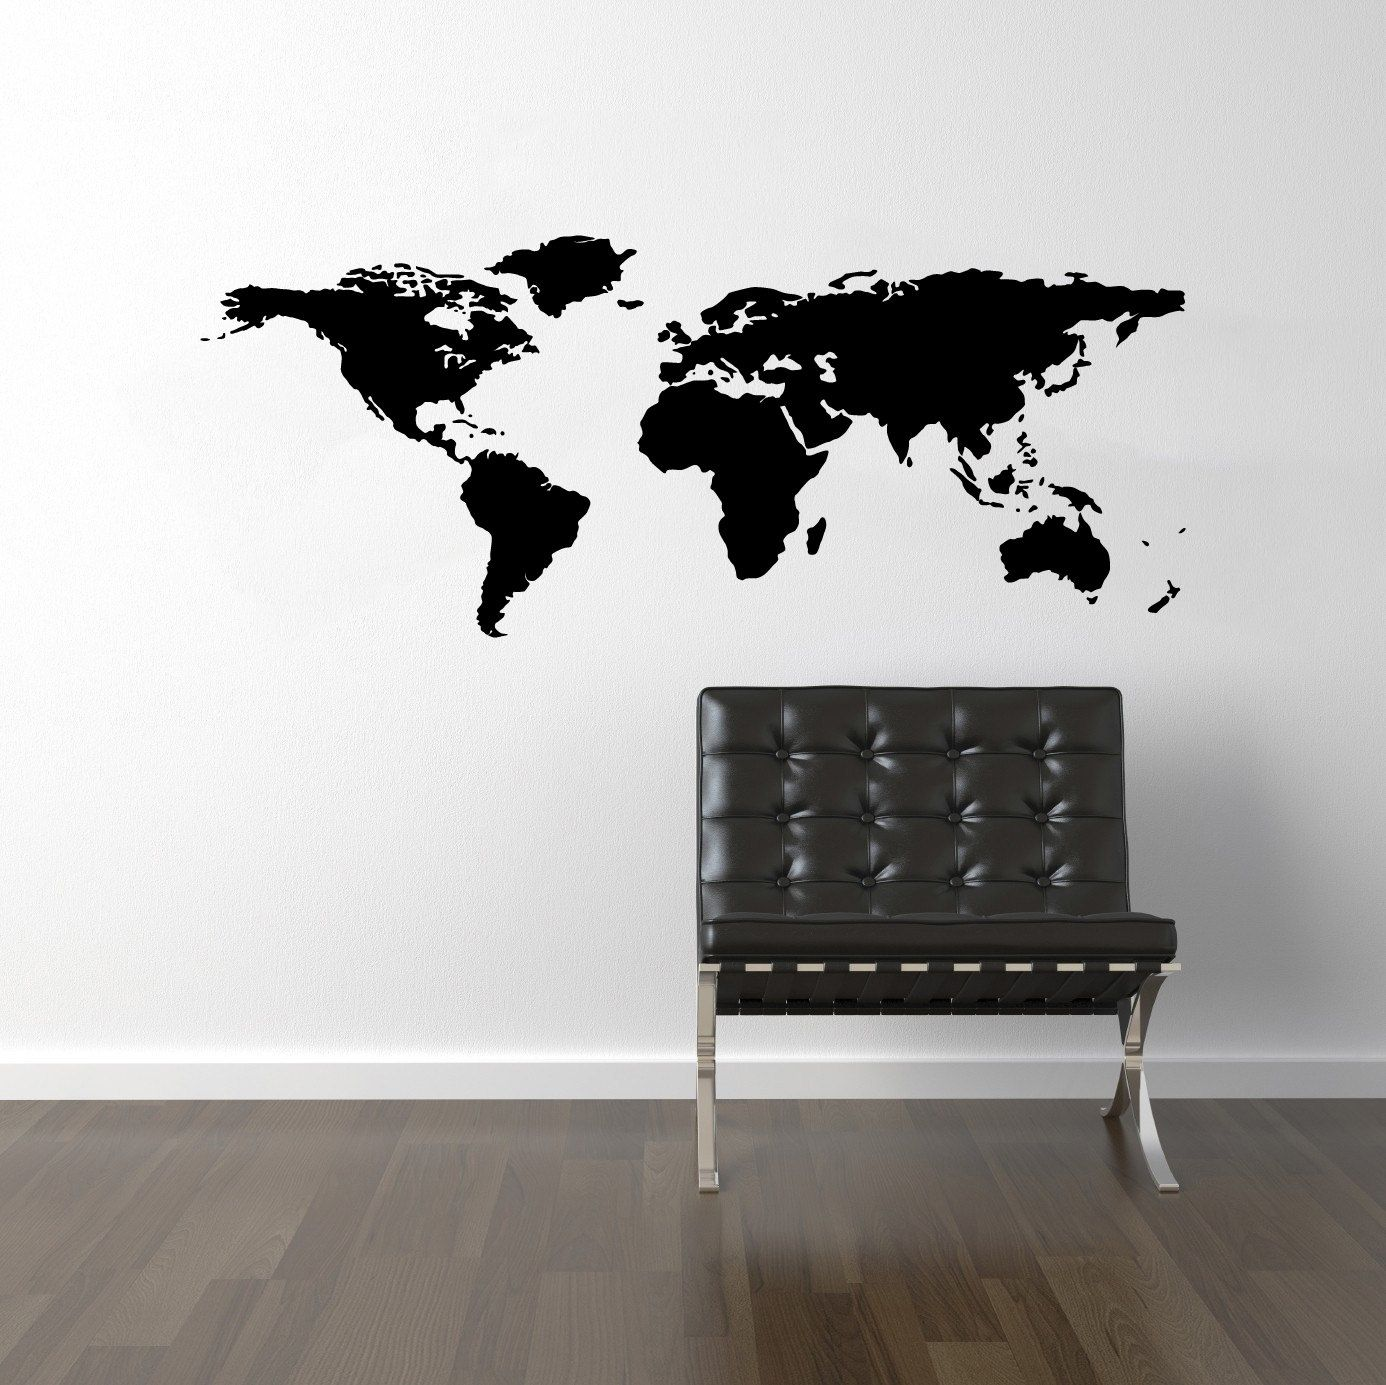 World map wall decal travel wall decor map wall sticker wal world map wall decal travel wall decor map wall sticker wal a127 amipublicfo Gallery